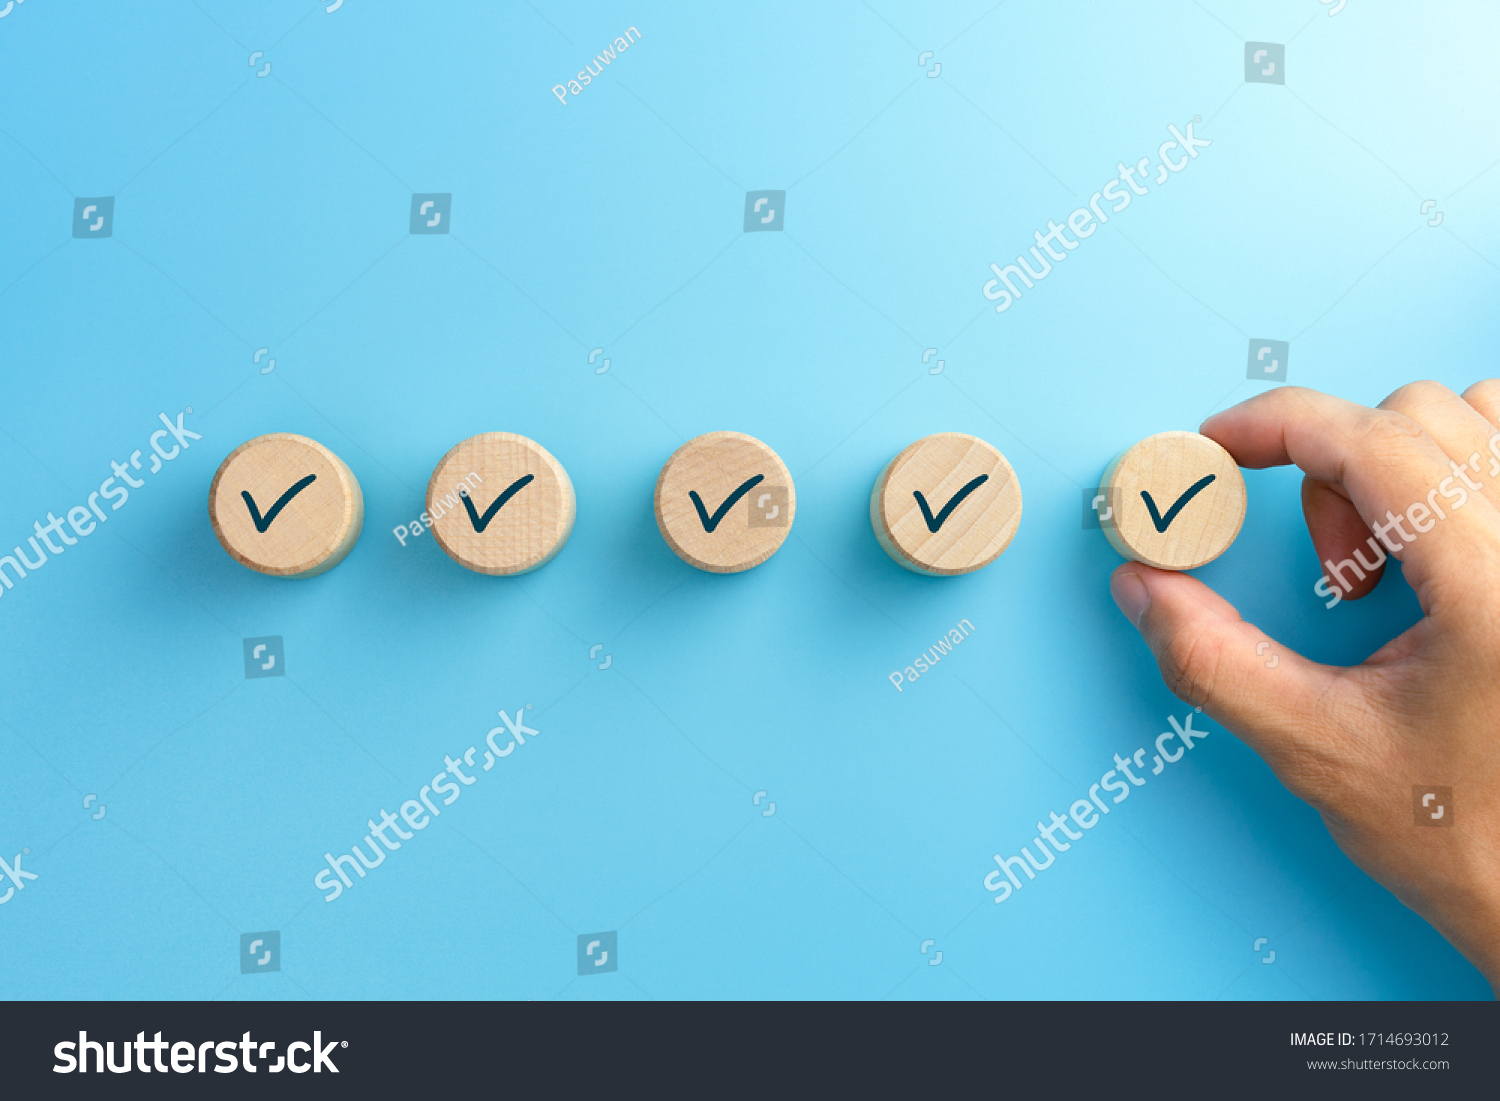 Checklist concept, Check mark on wooden blocks, blue background with copy space #1714693012